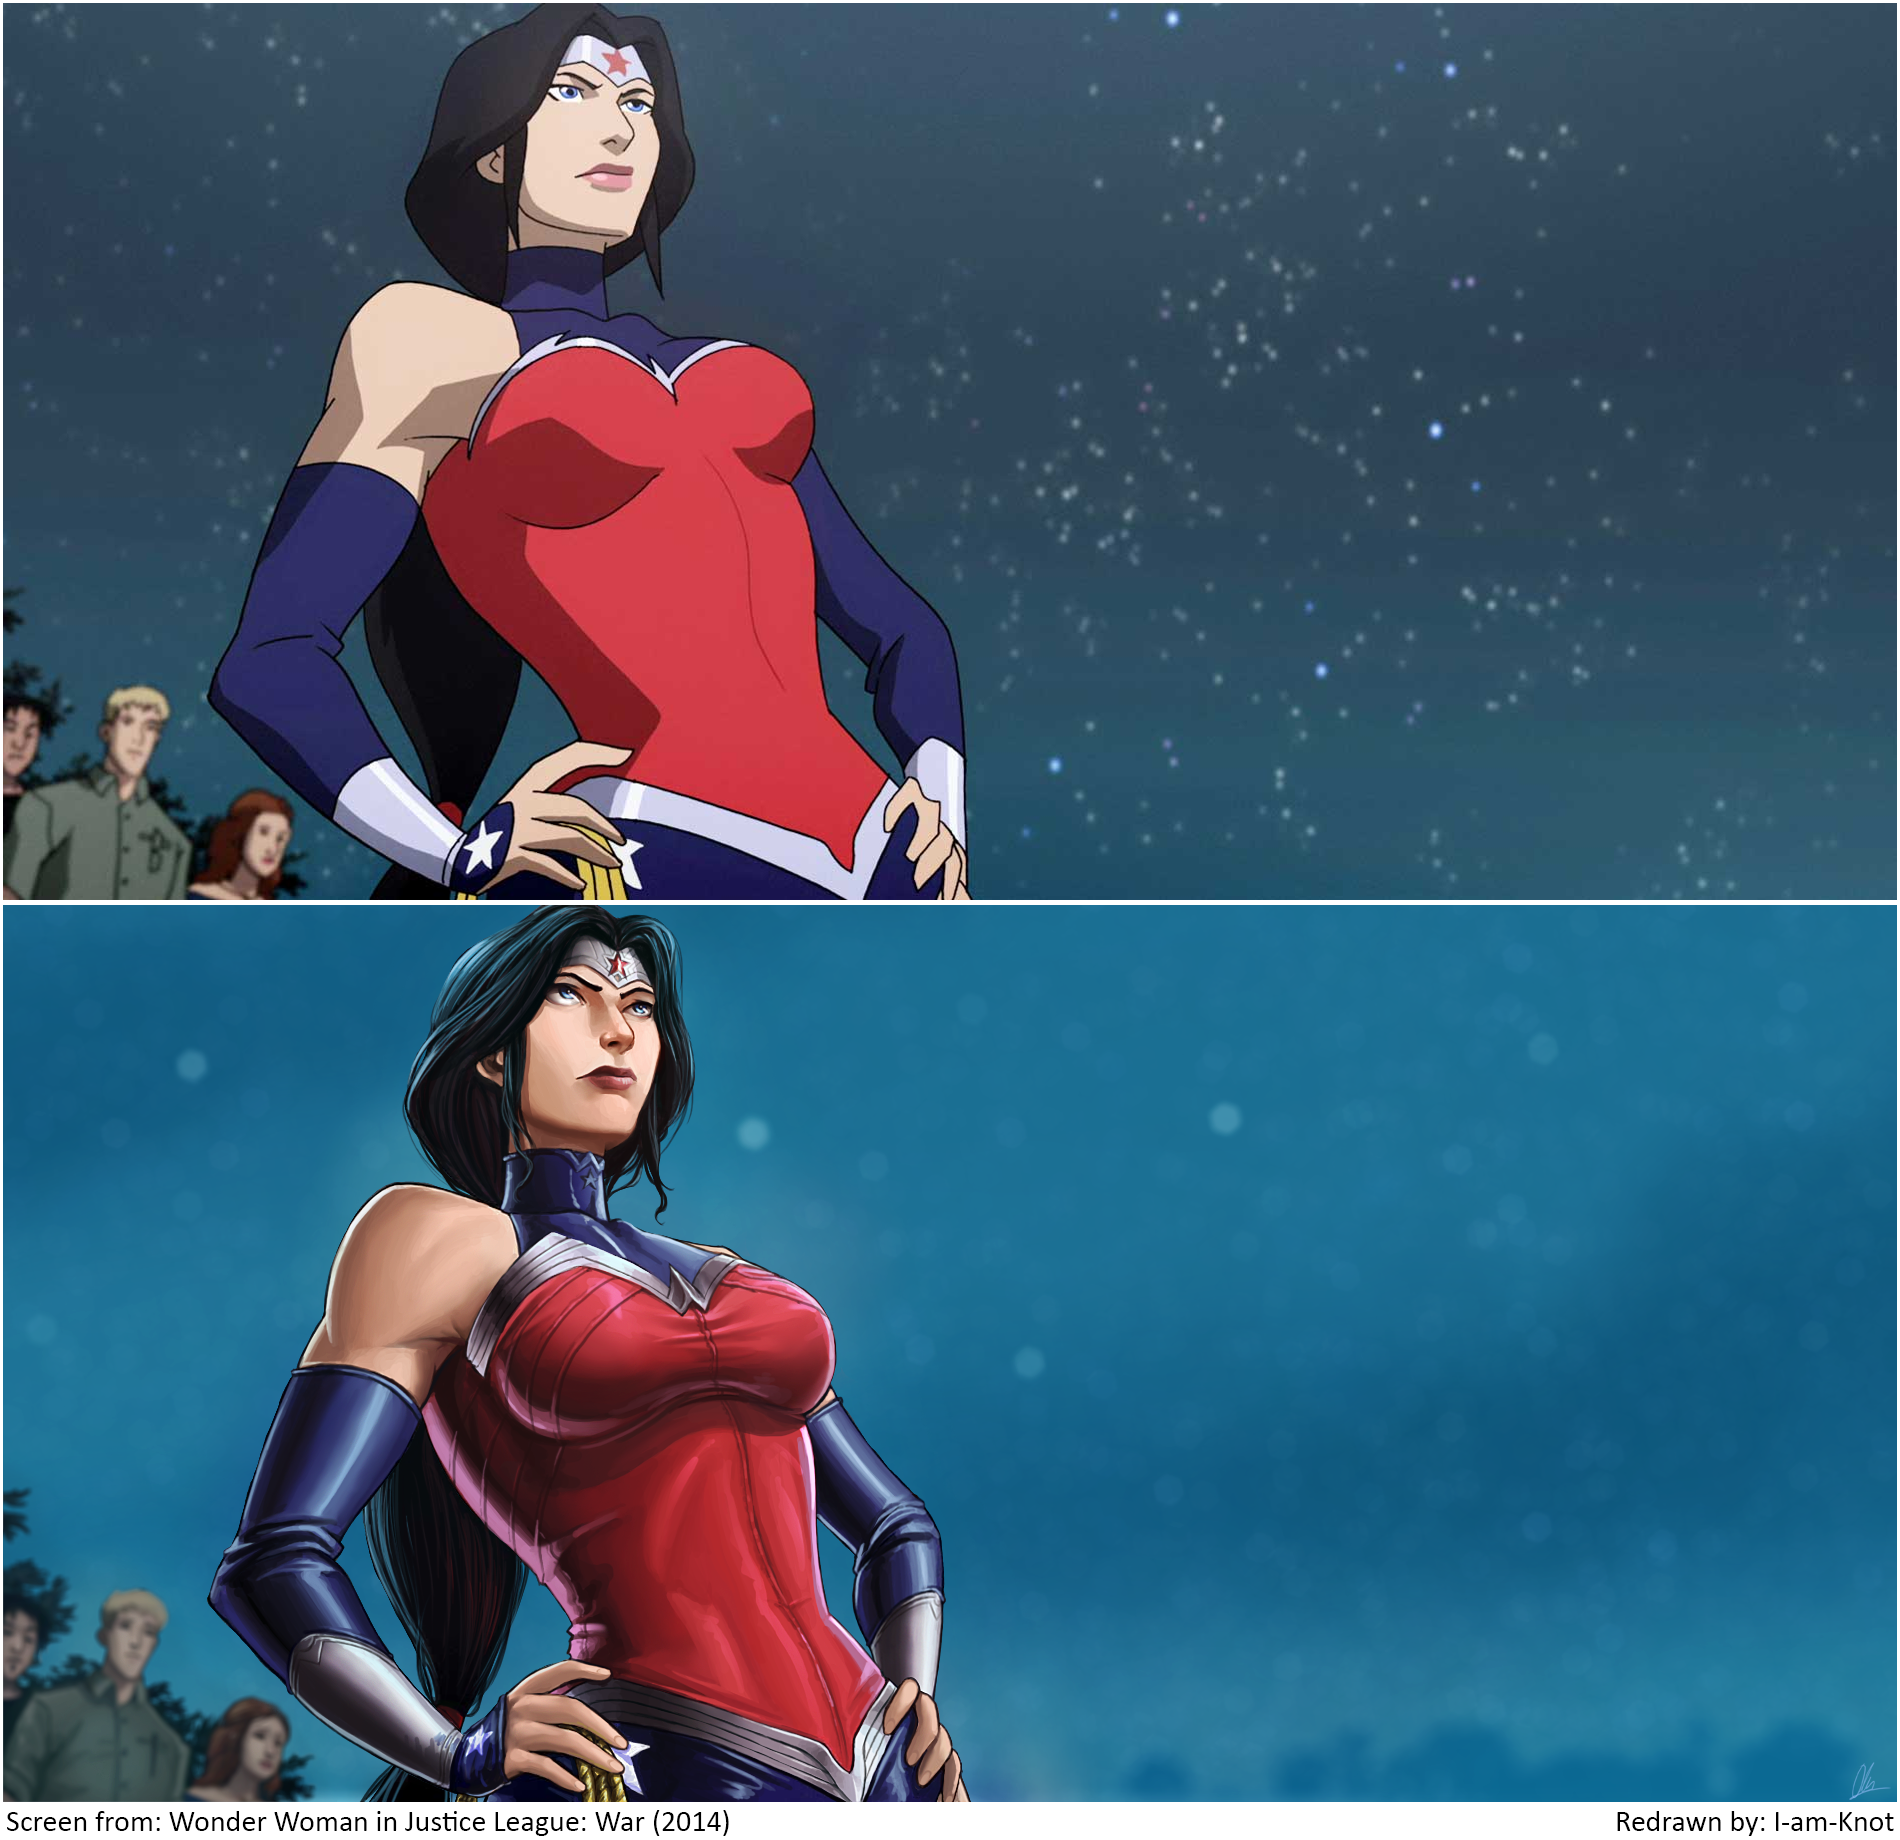 Wonder Woman: Justice League War by philbourassa on DeviantArt |Wonder Woman Justice League War